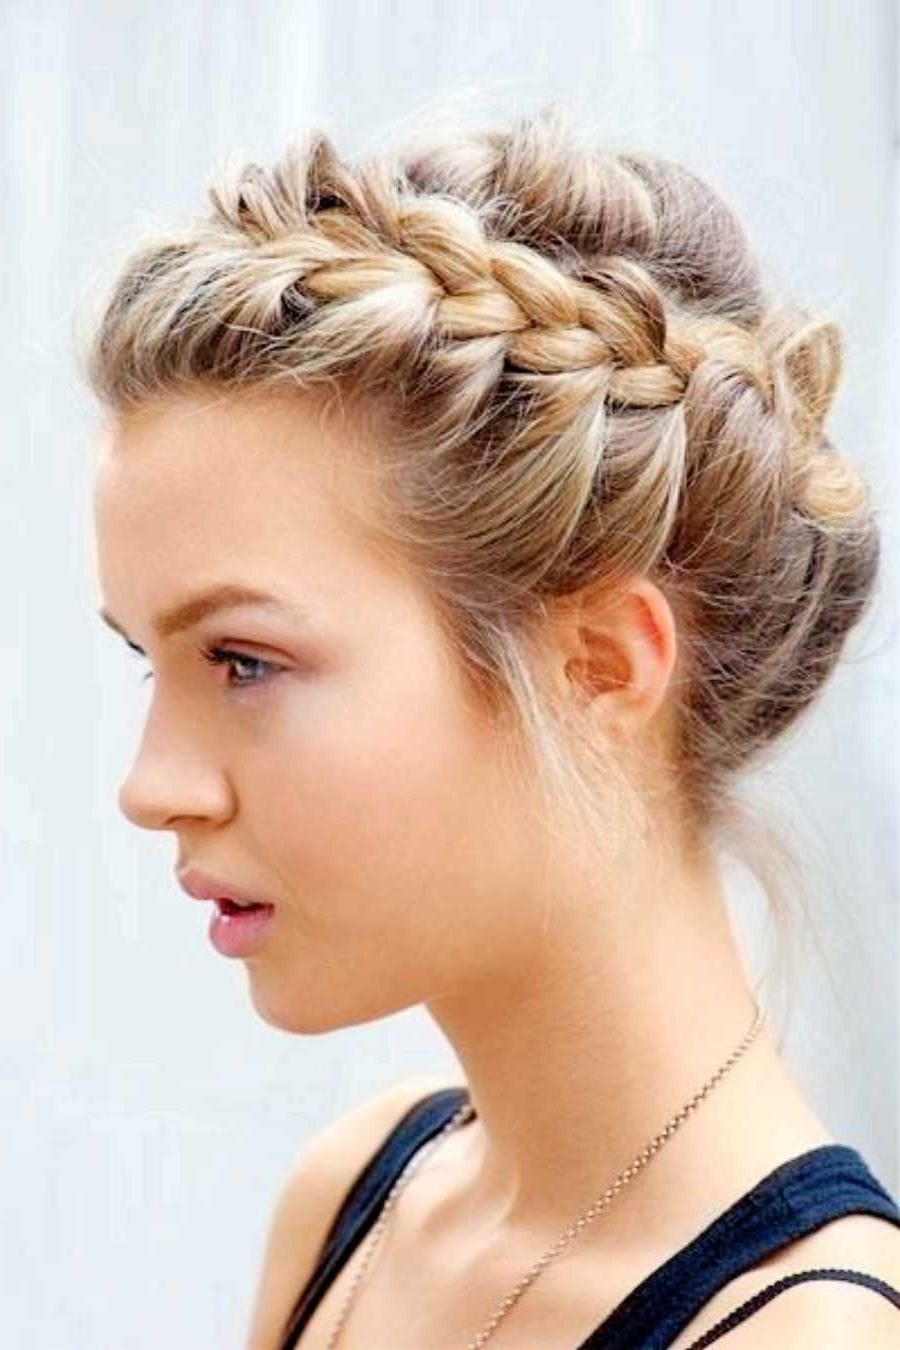 Hairstyles Updo Braid Updo For Short Hair Braids For Short Hair For Cute Short Hair Updos (View 5 of 15)